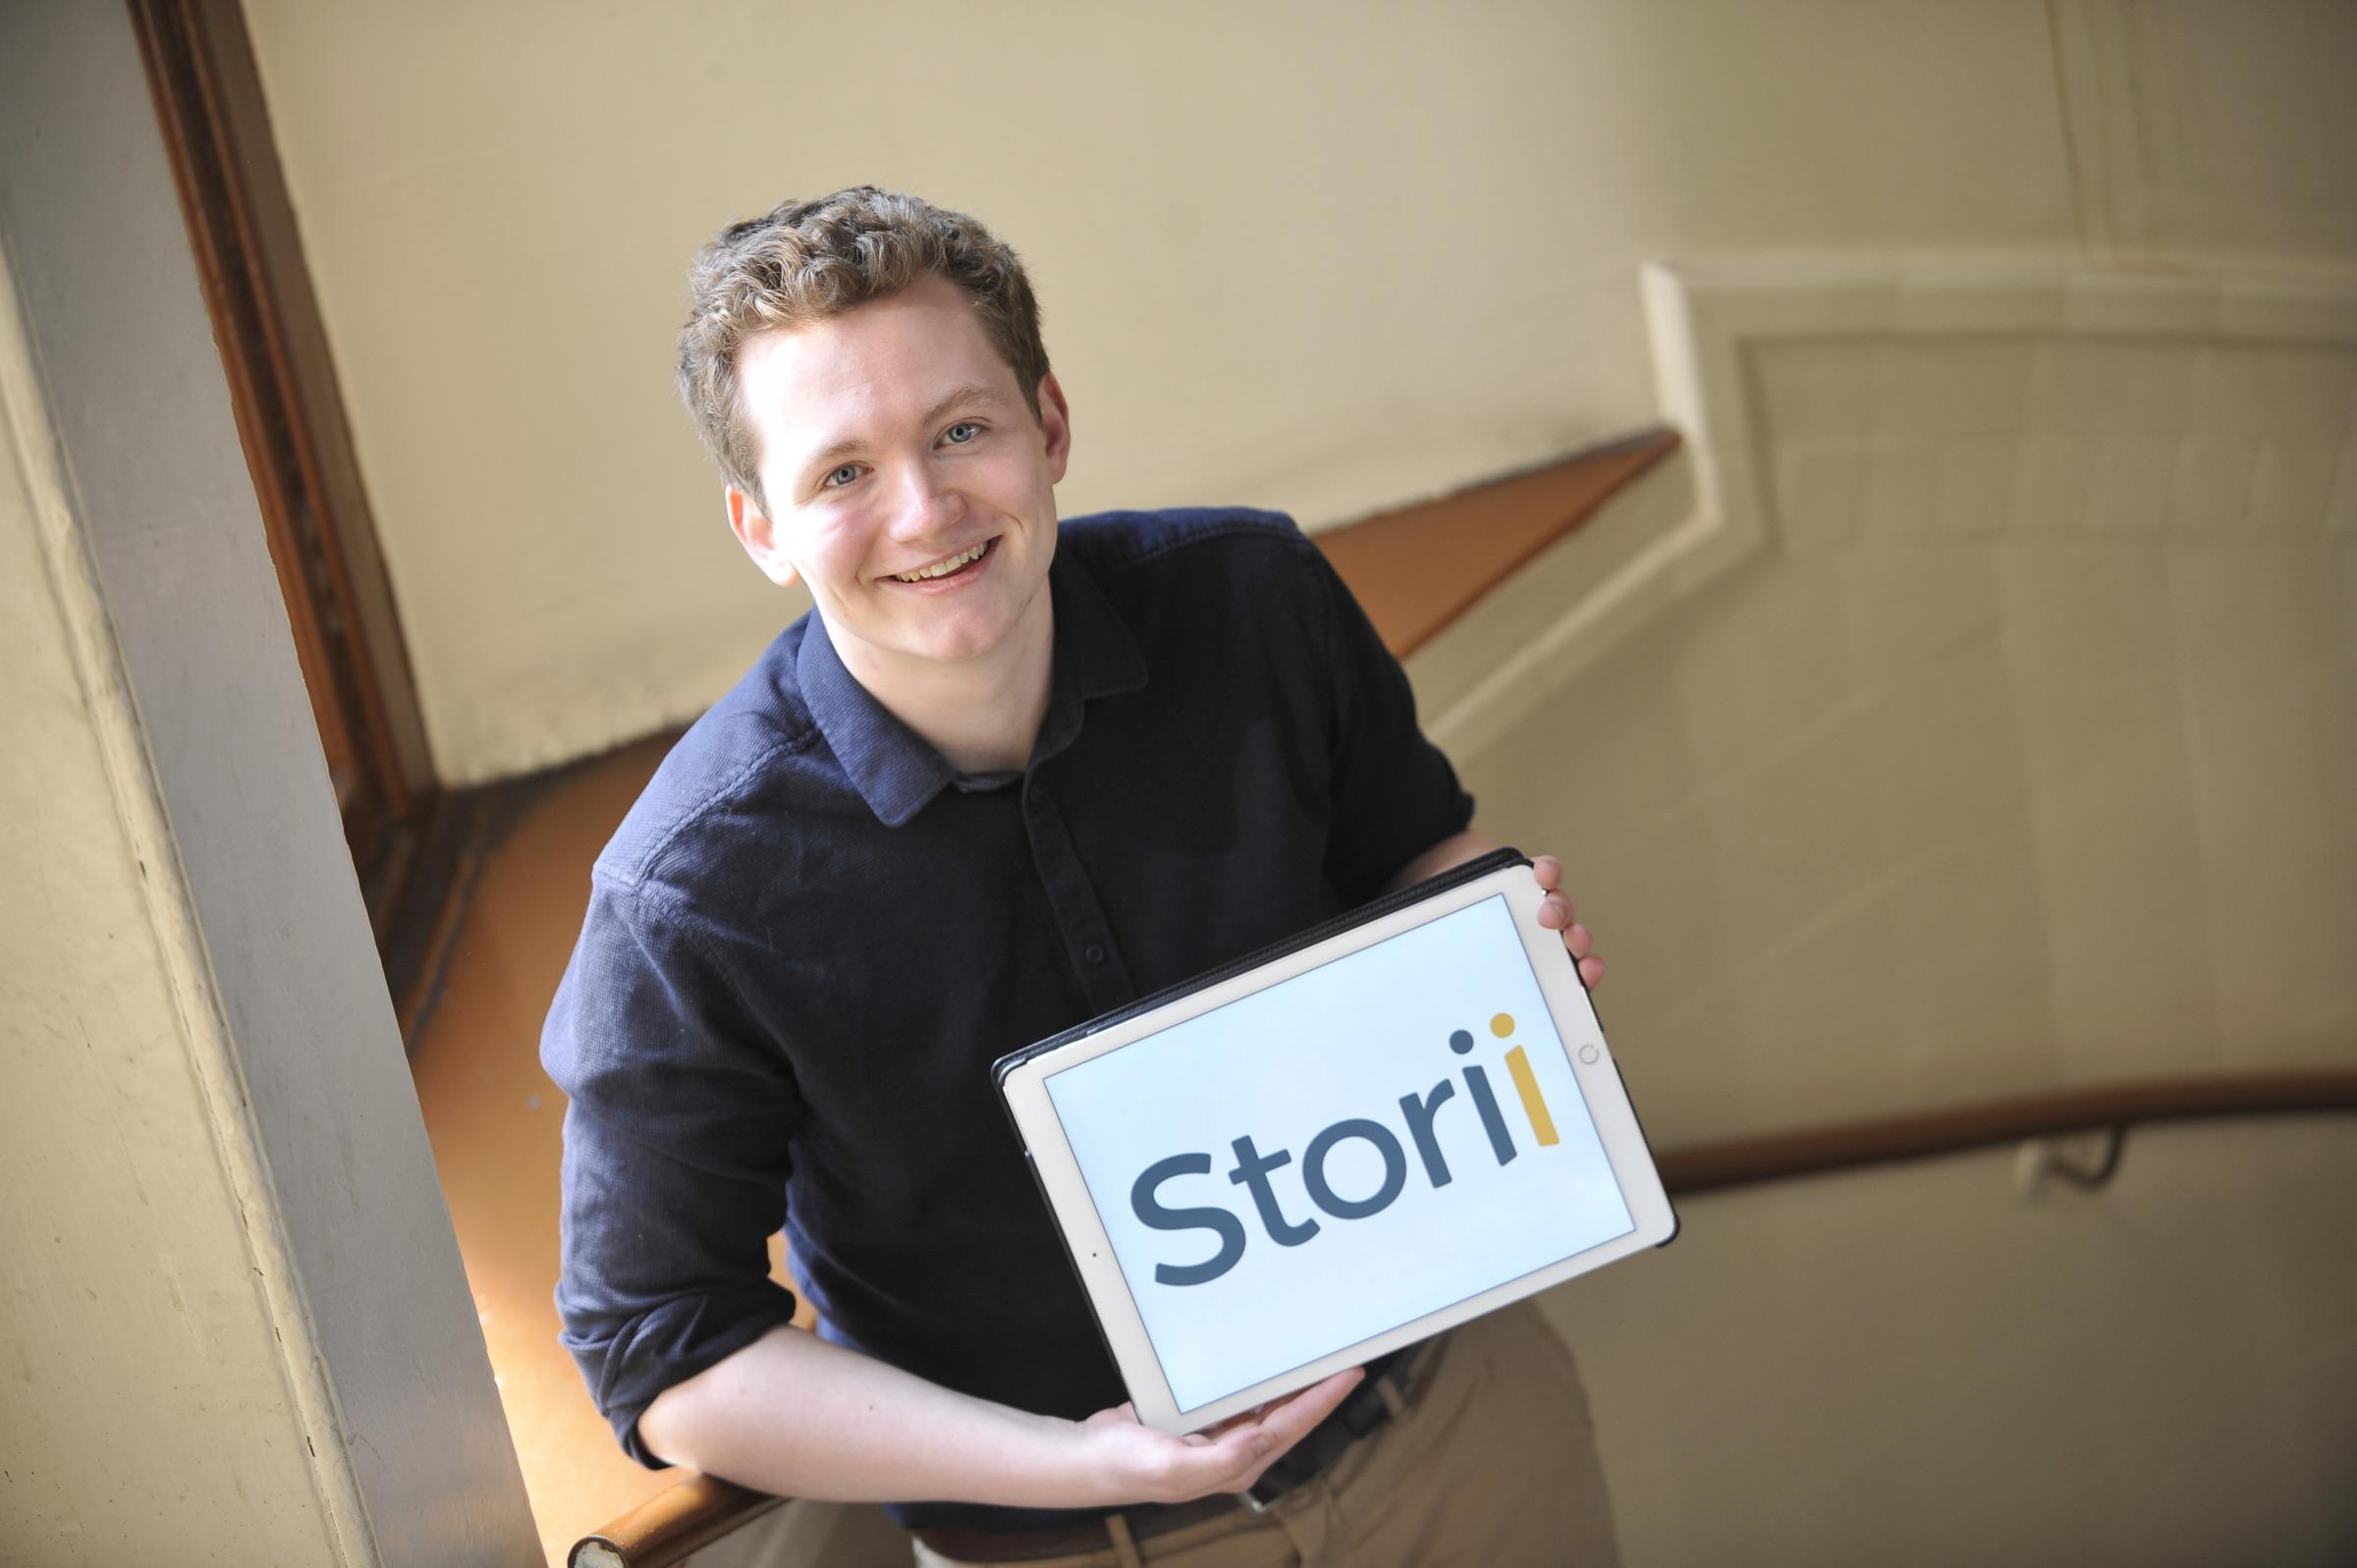 Young Glasgow entrepreneur wins £100k to further business that allows carers to record memories